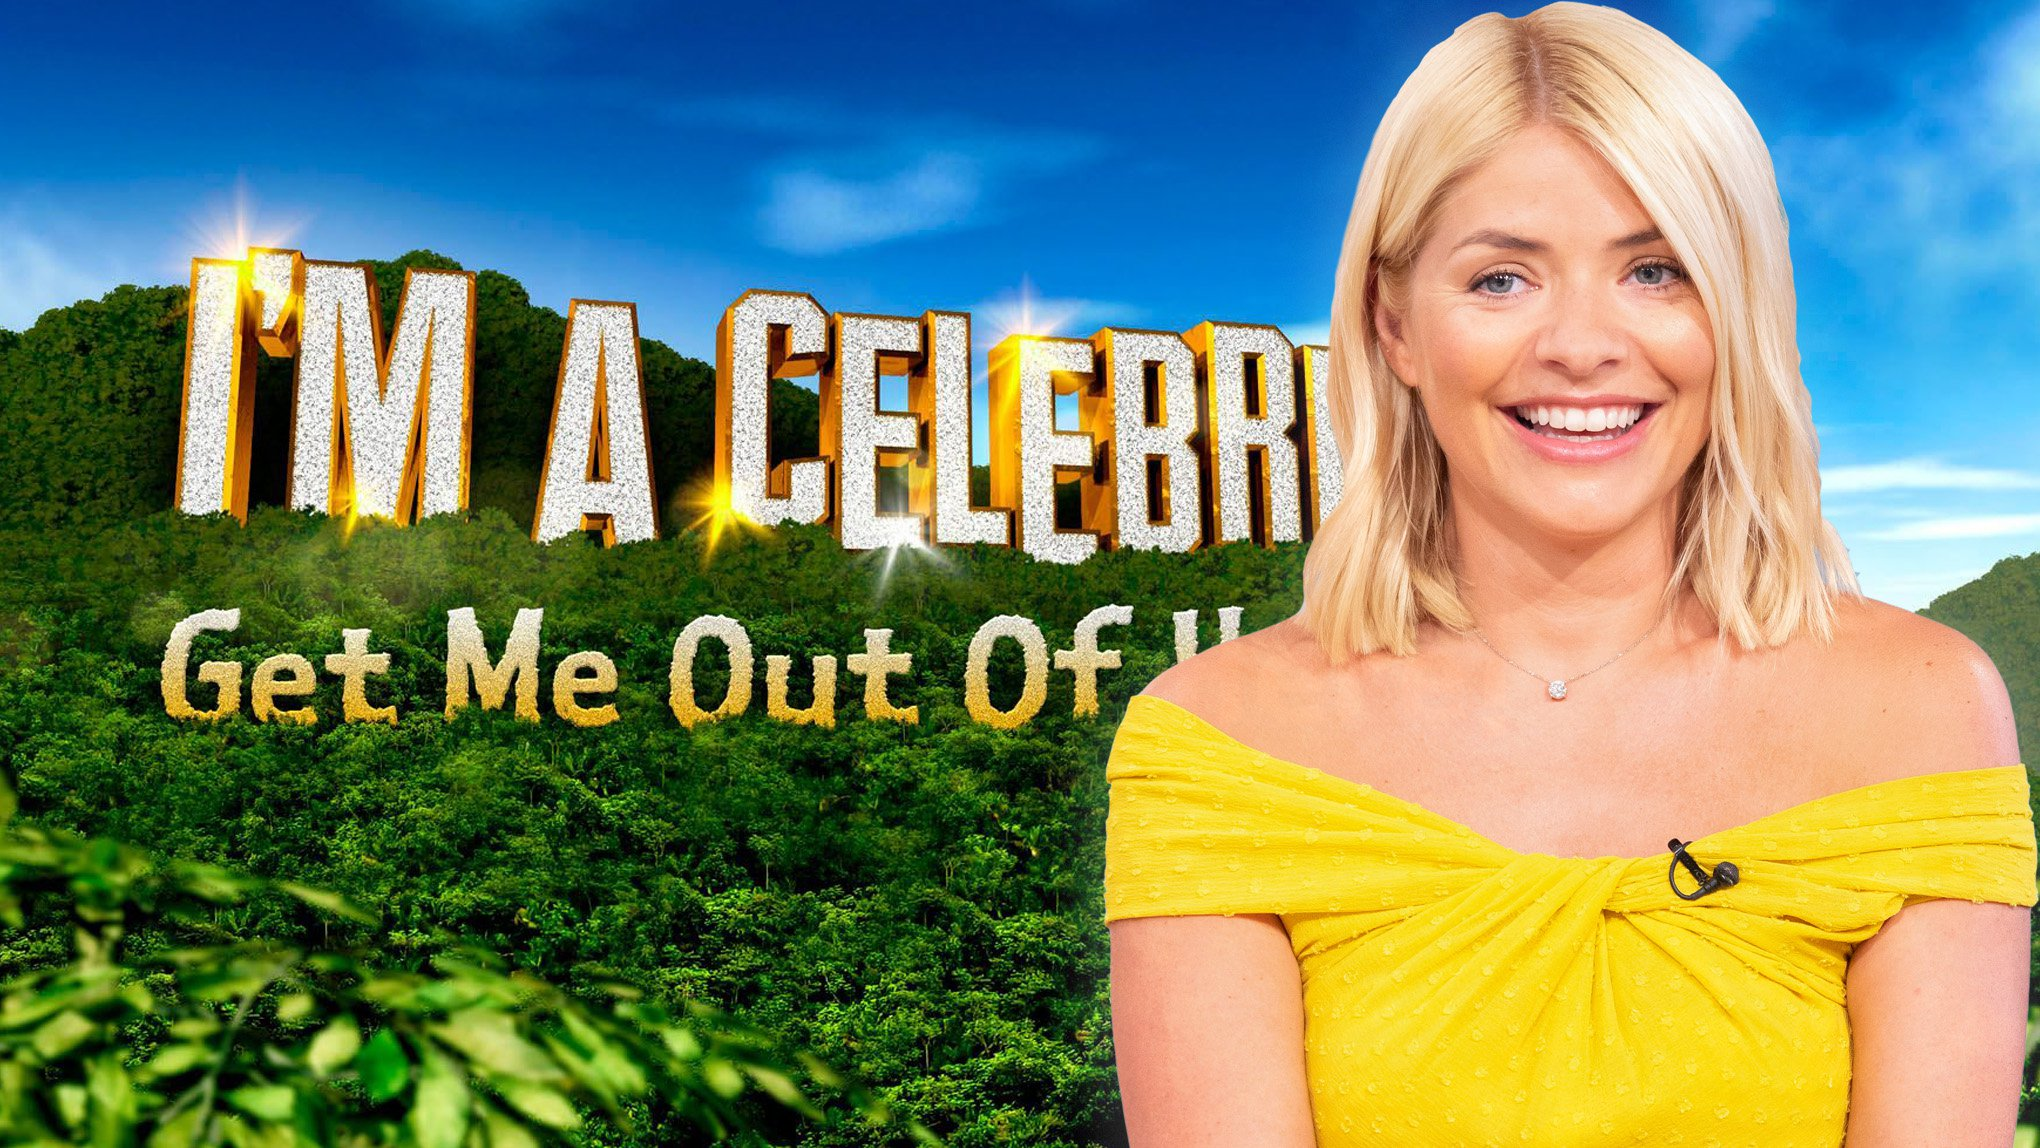 I'm A Celebrity 2018 start date and who is going into the jungle this year?